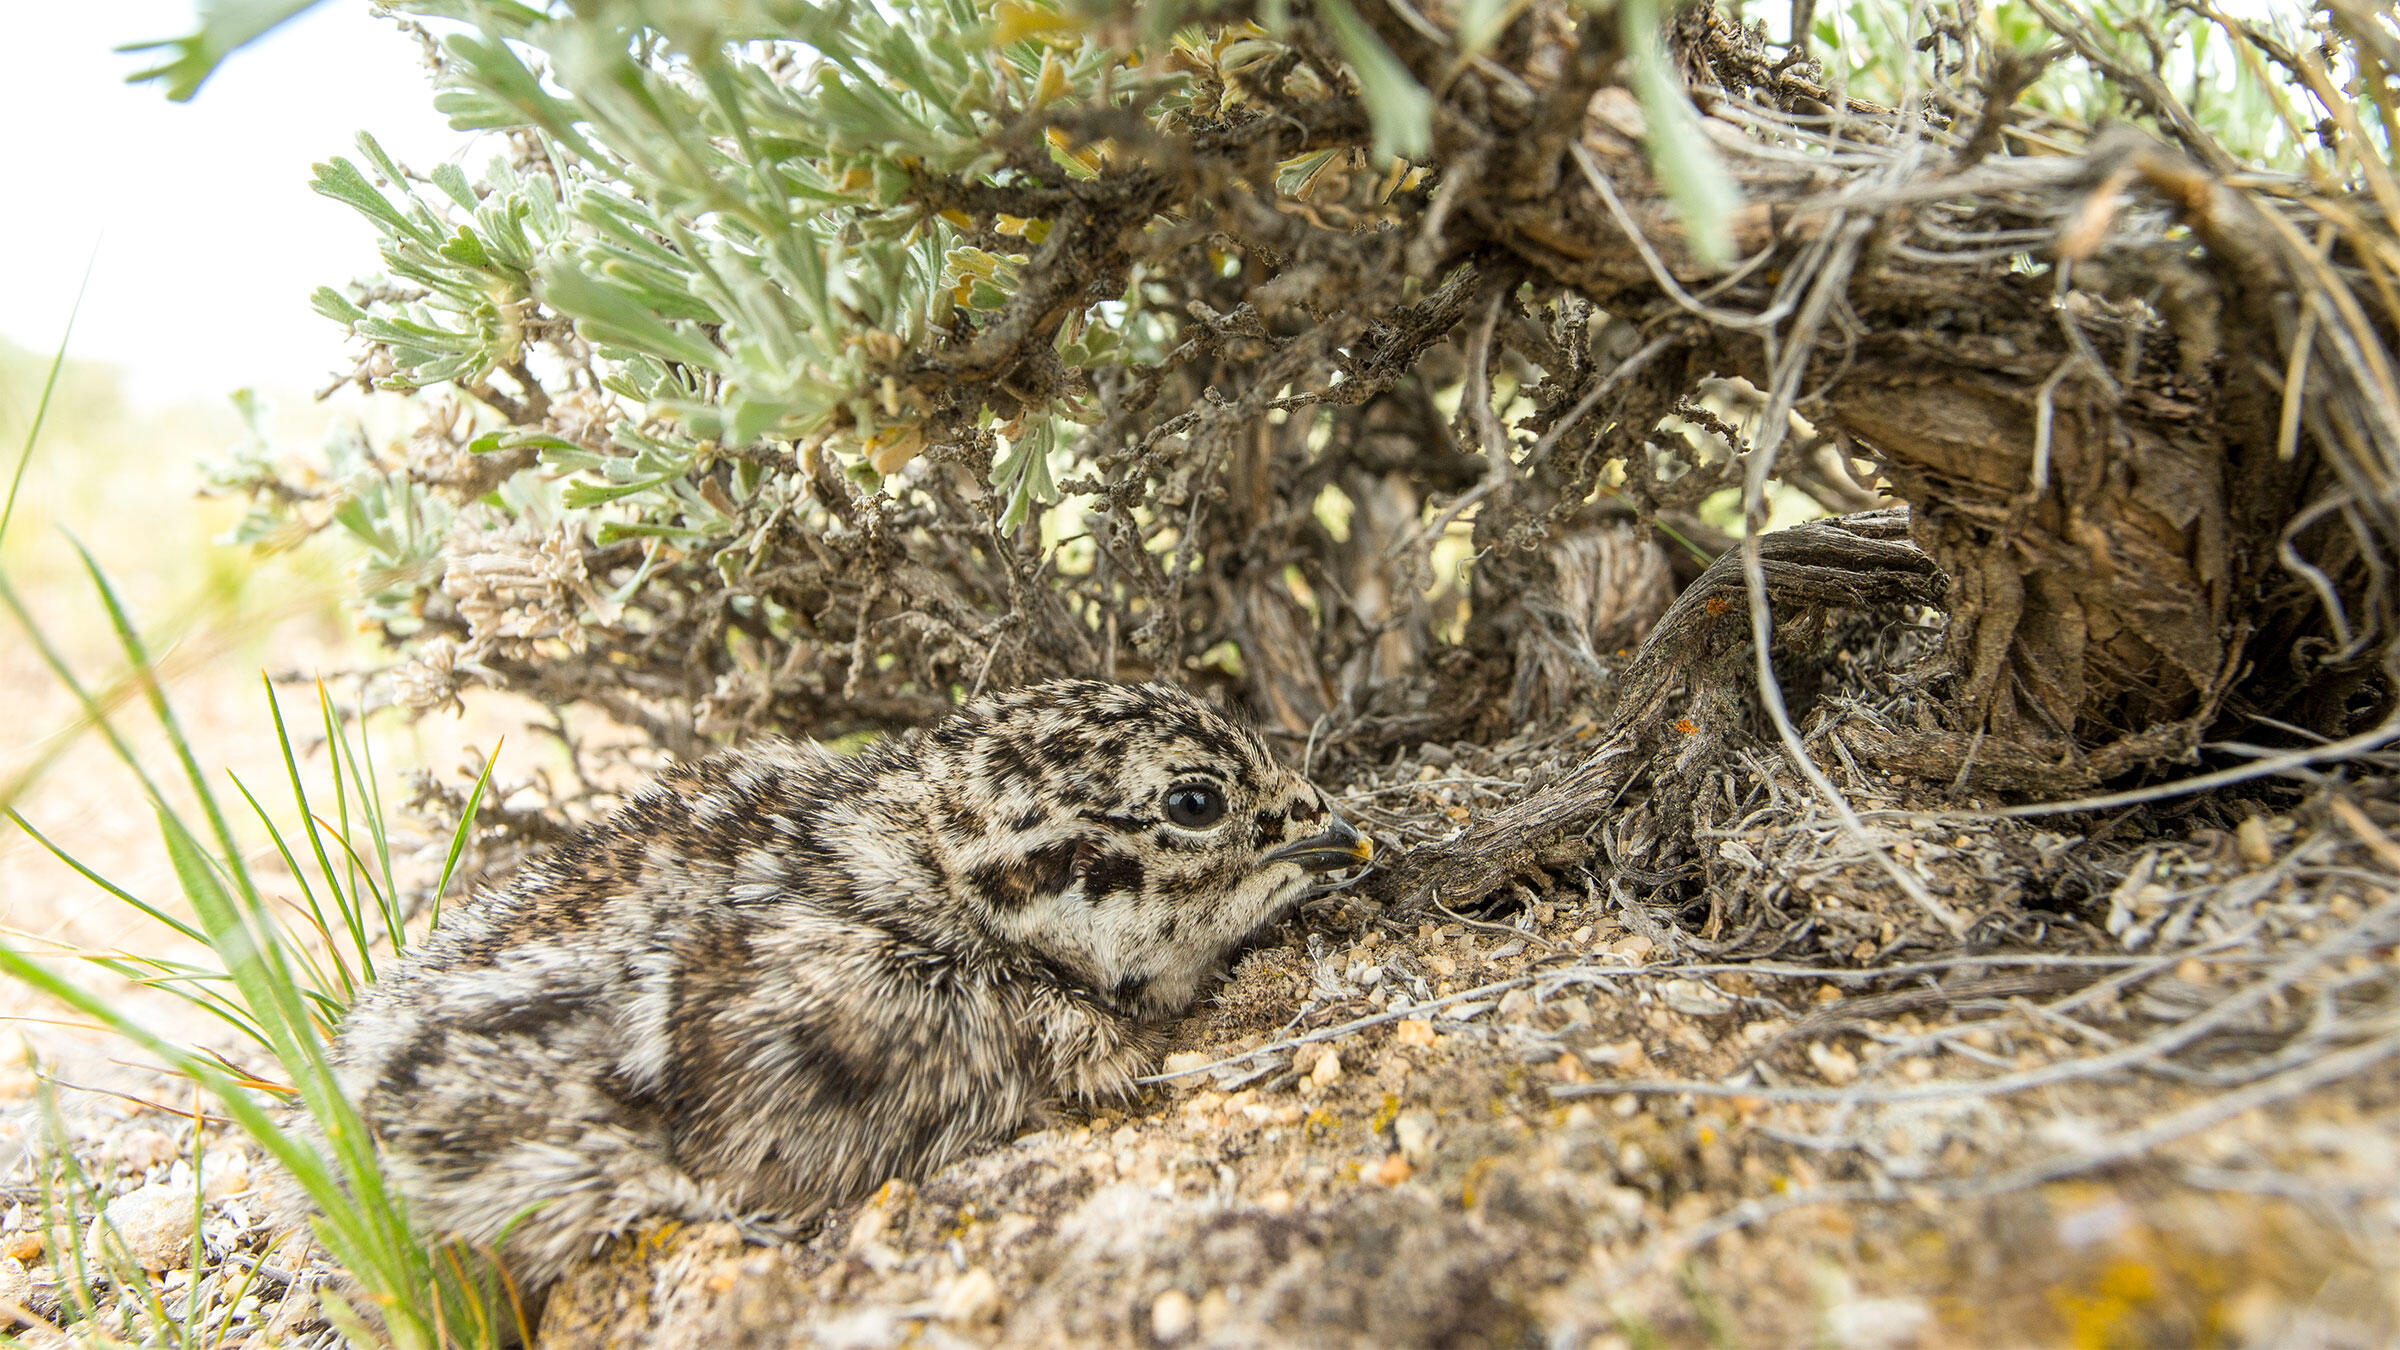 Greater Sage-Grouse nests can be extremely hard to find, and if a female grouse feels disturbed or that she has lost too many eggs, she might abandon a nest. Noppadol Paothong